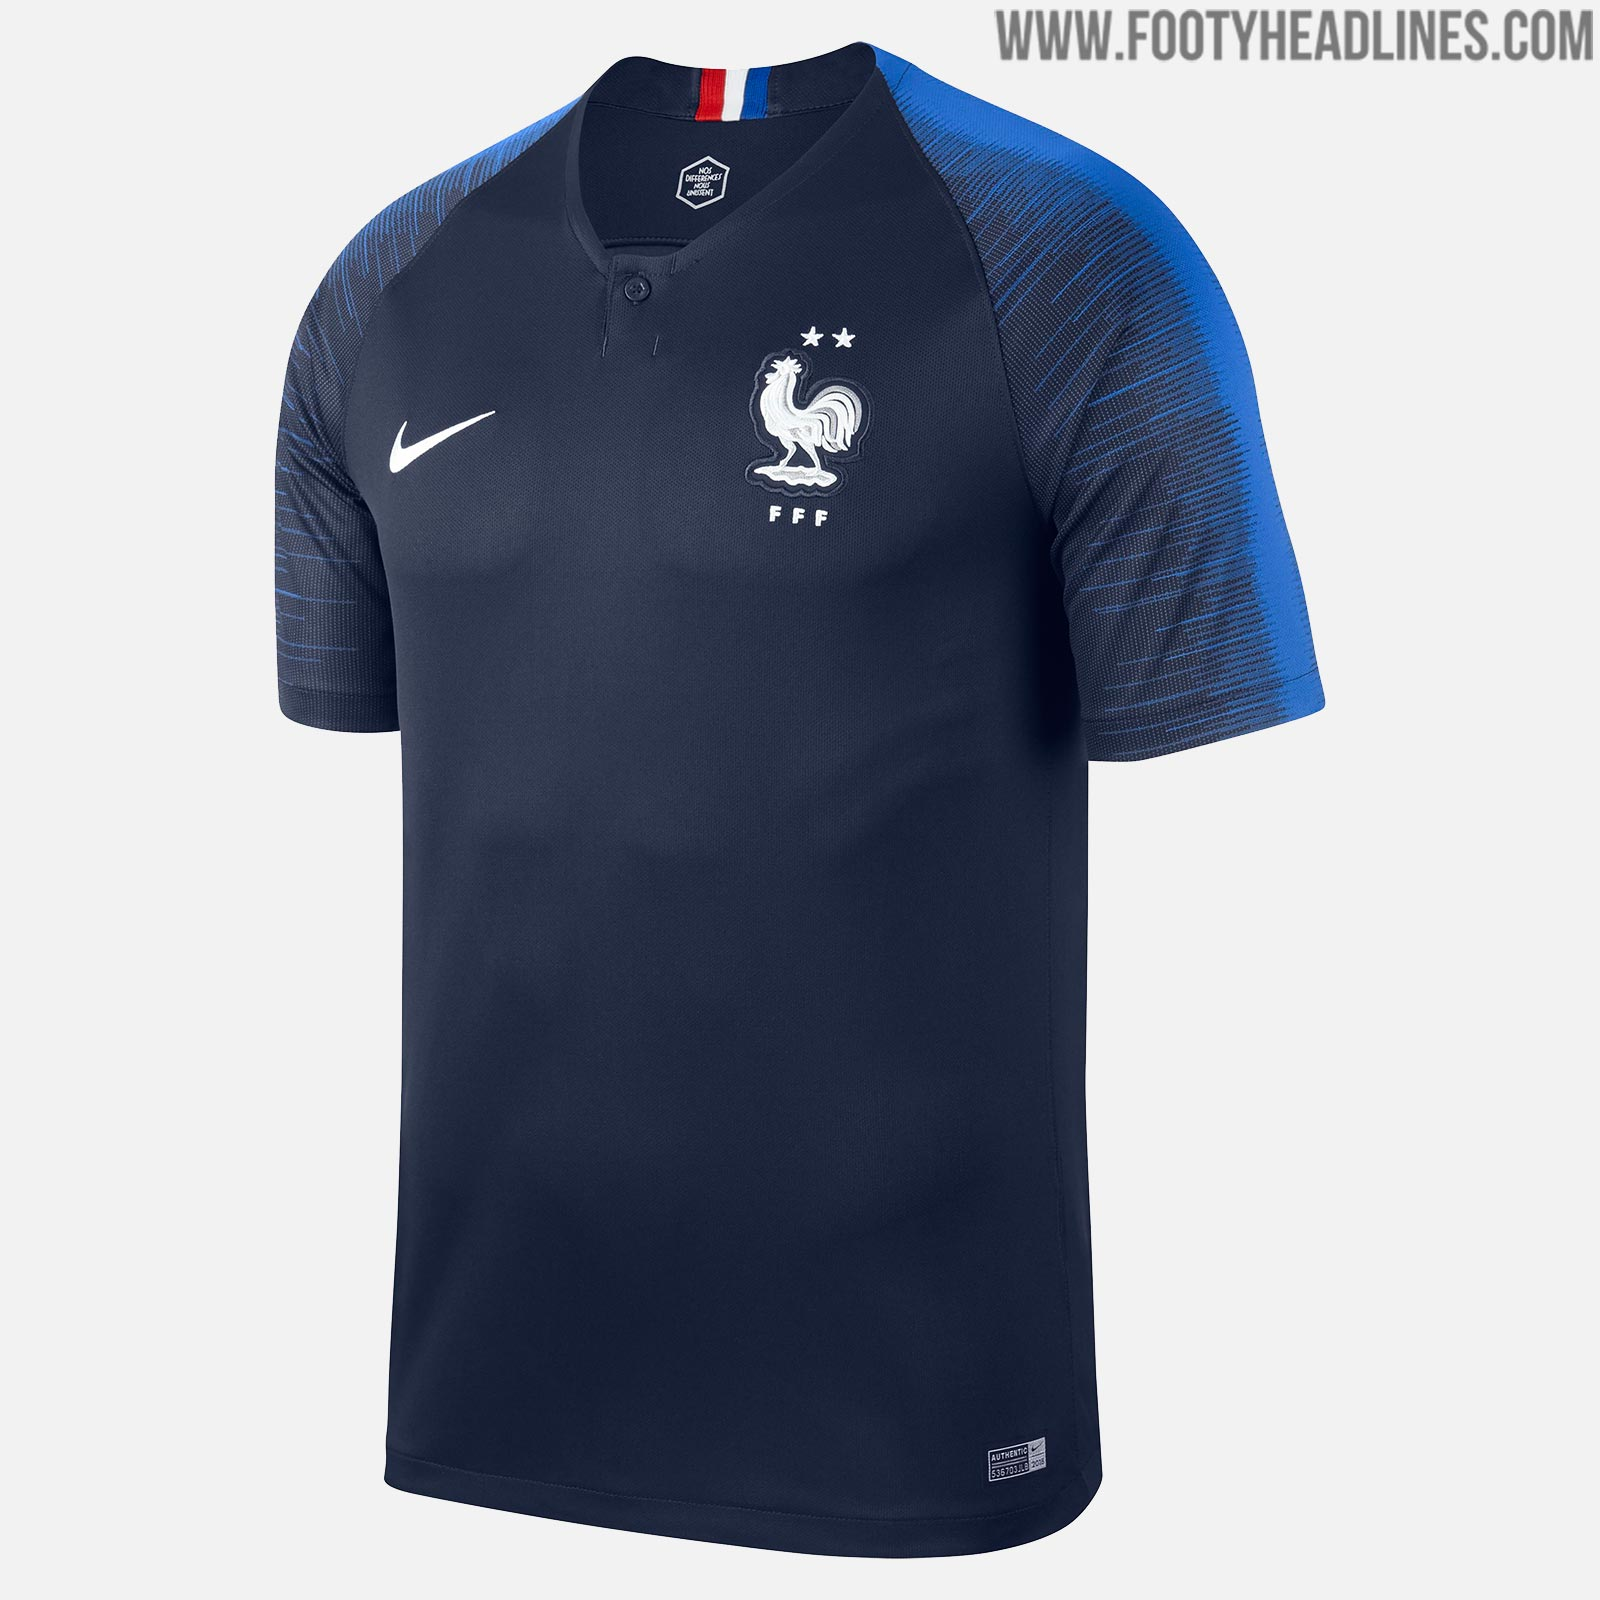 8a291bb4b37 The Nike France 2 Star jersey is an updated version of the France 2018  World Cup kit featuring two stars to celebrate France's second World Cup  title.